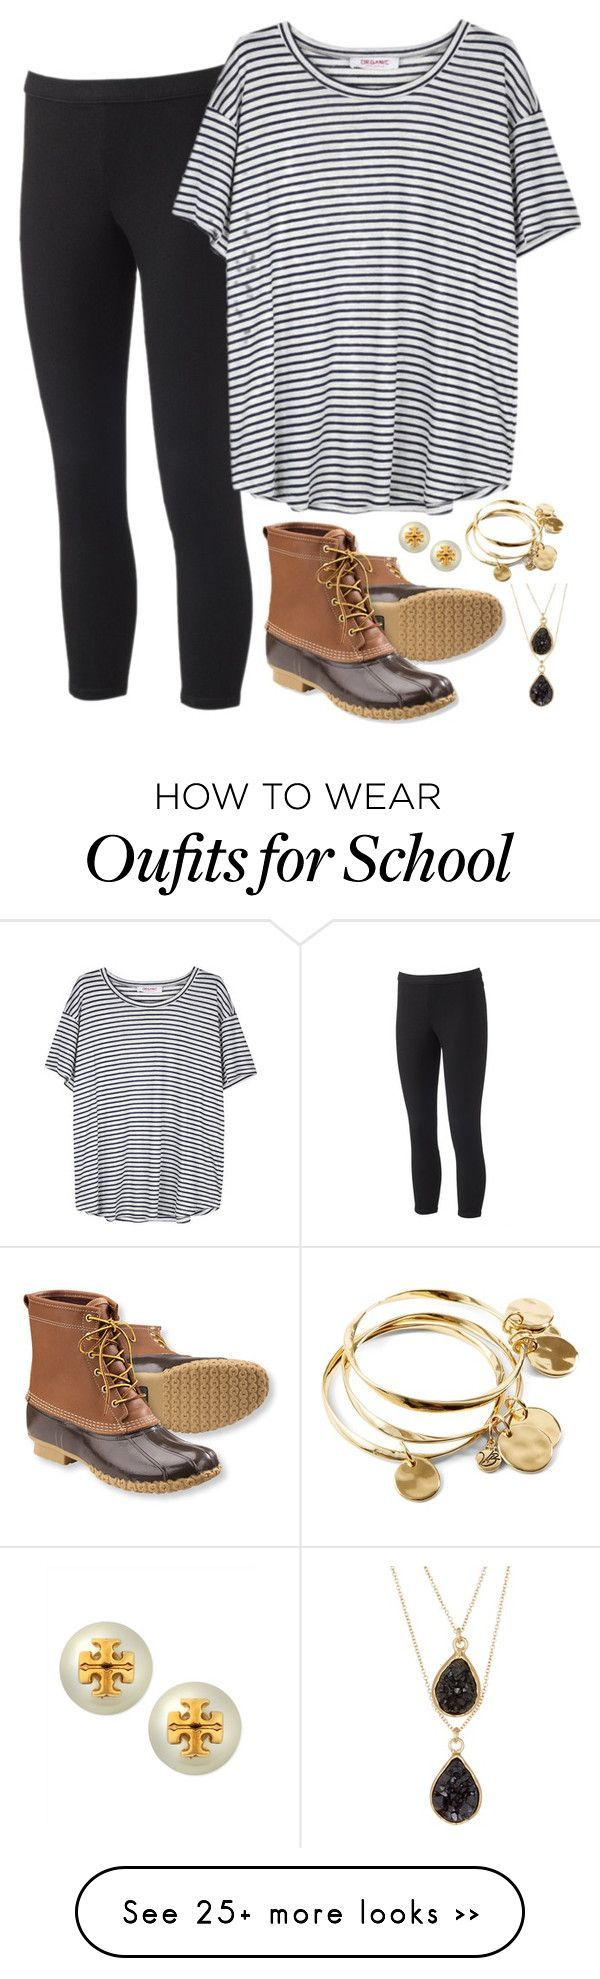 """""""what I wore to school"""" by conleighh on Polyvore featuring moda, Vera Bradley, L.L.Bean, Jennifer Lopez, Organic by John Patrick, 14th & Union e Tory Burch"""